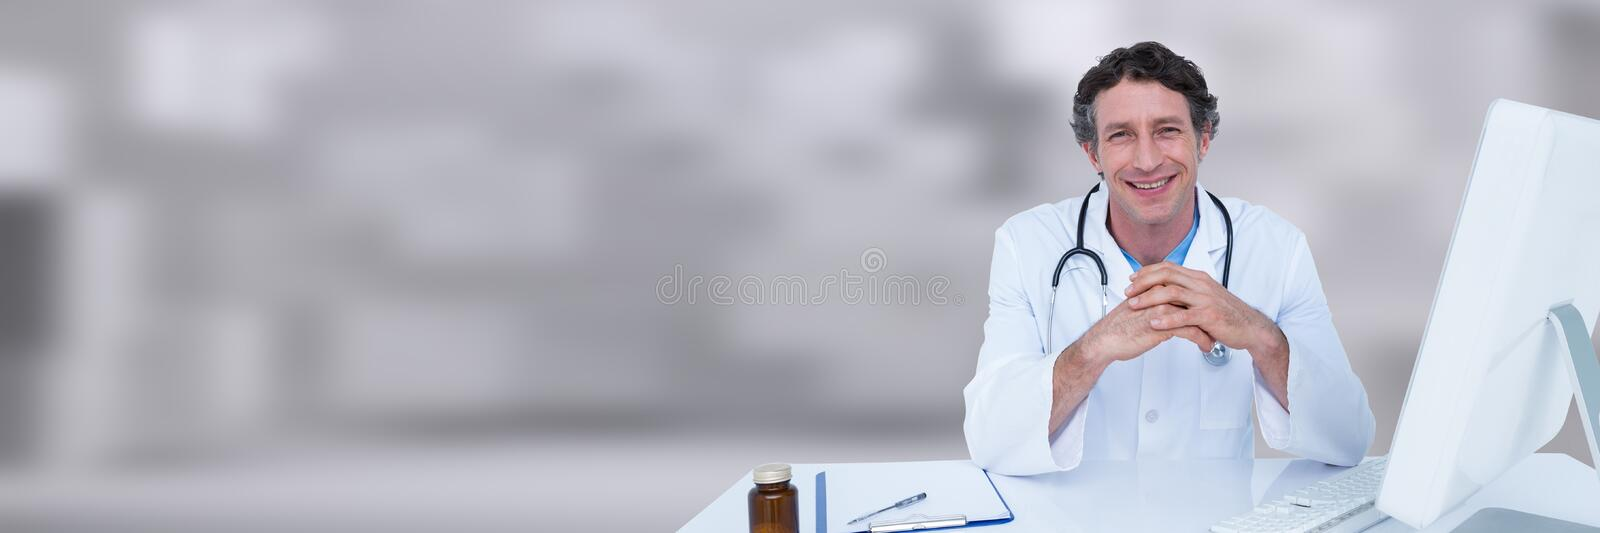 Doctor hands together at desk against white blurred background. Digital composite of Doctor hands together at desk against white blurred background royalty free stock image